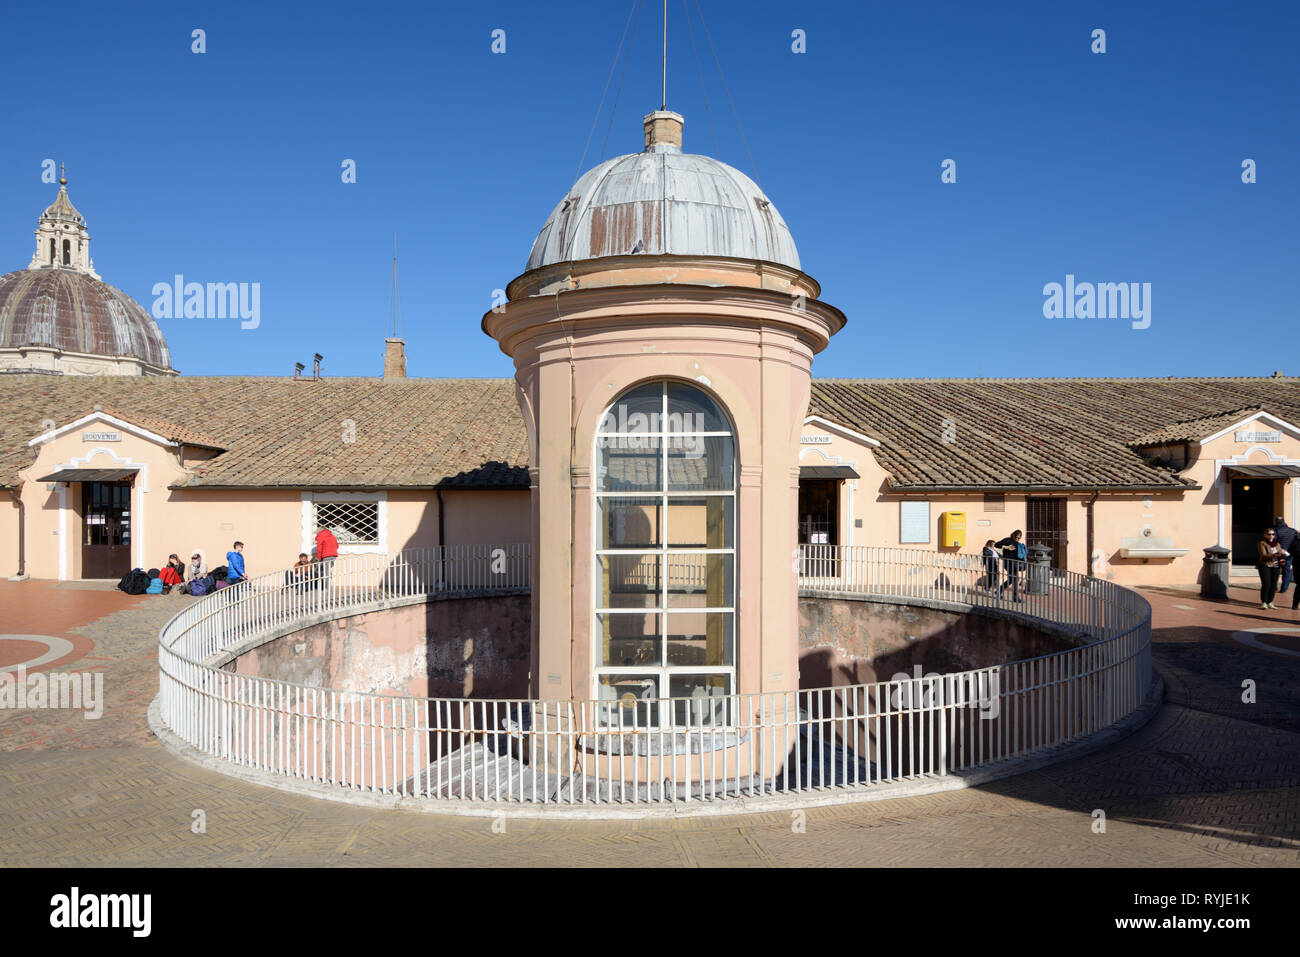 Cupola-shaped roof lantern, roof tower, roof cupola or skylights on the roof of Saint Peter's Basilica or Church Vatican Rome Italy - Stock Image